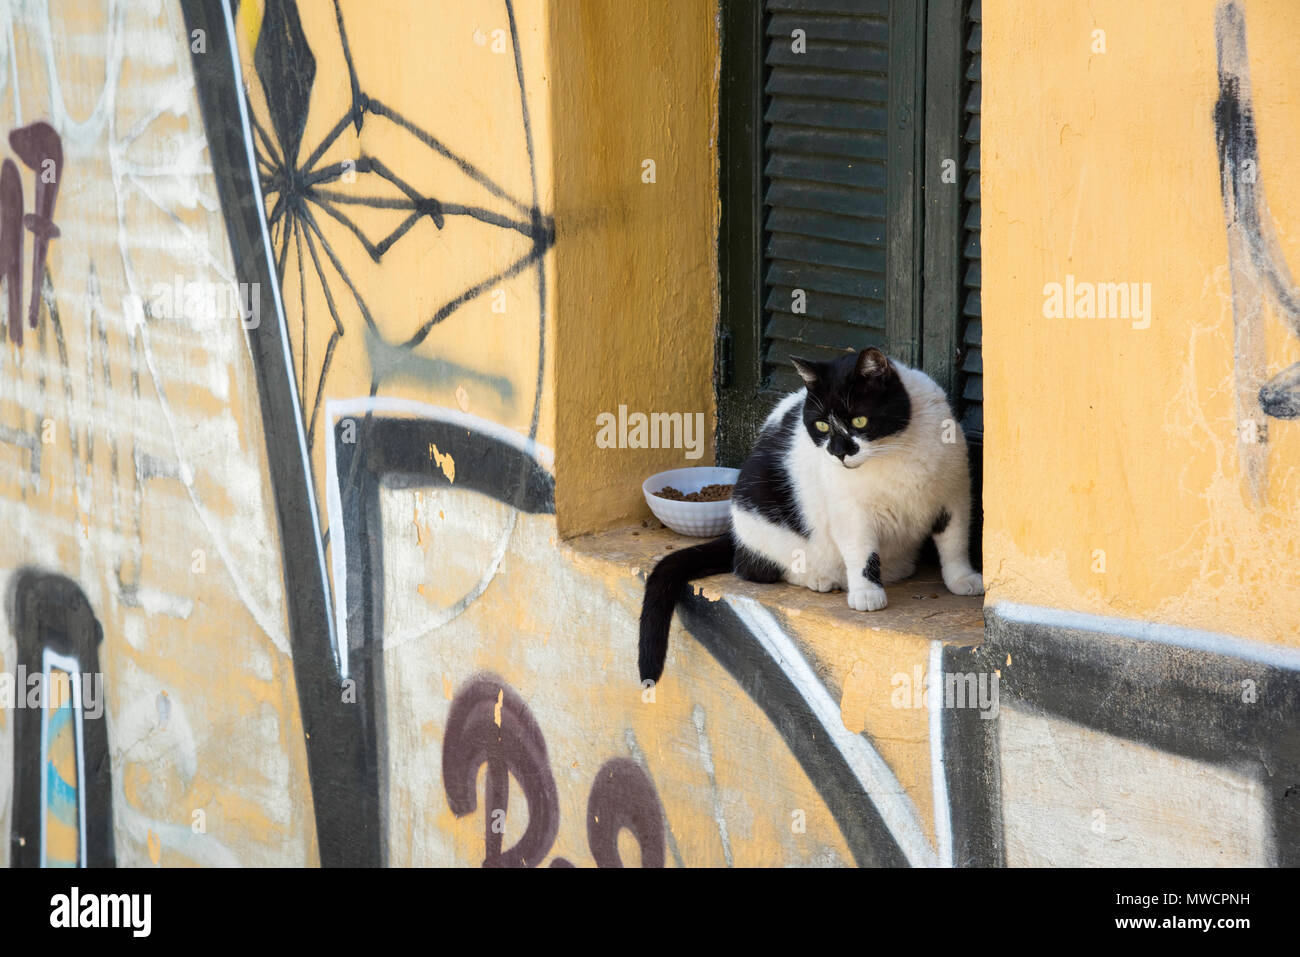 Cat in a window in the Plaka neighborhood of Athens, Greece - Stock Image